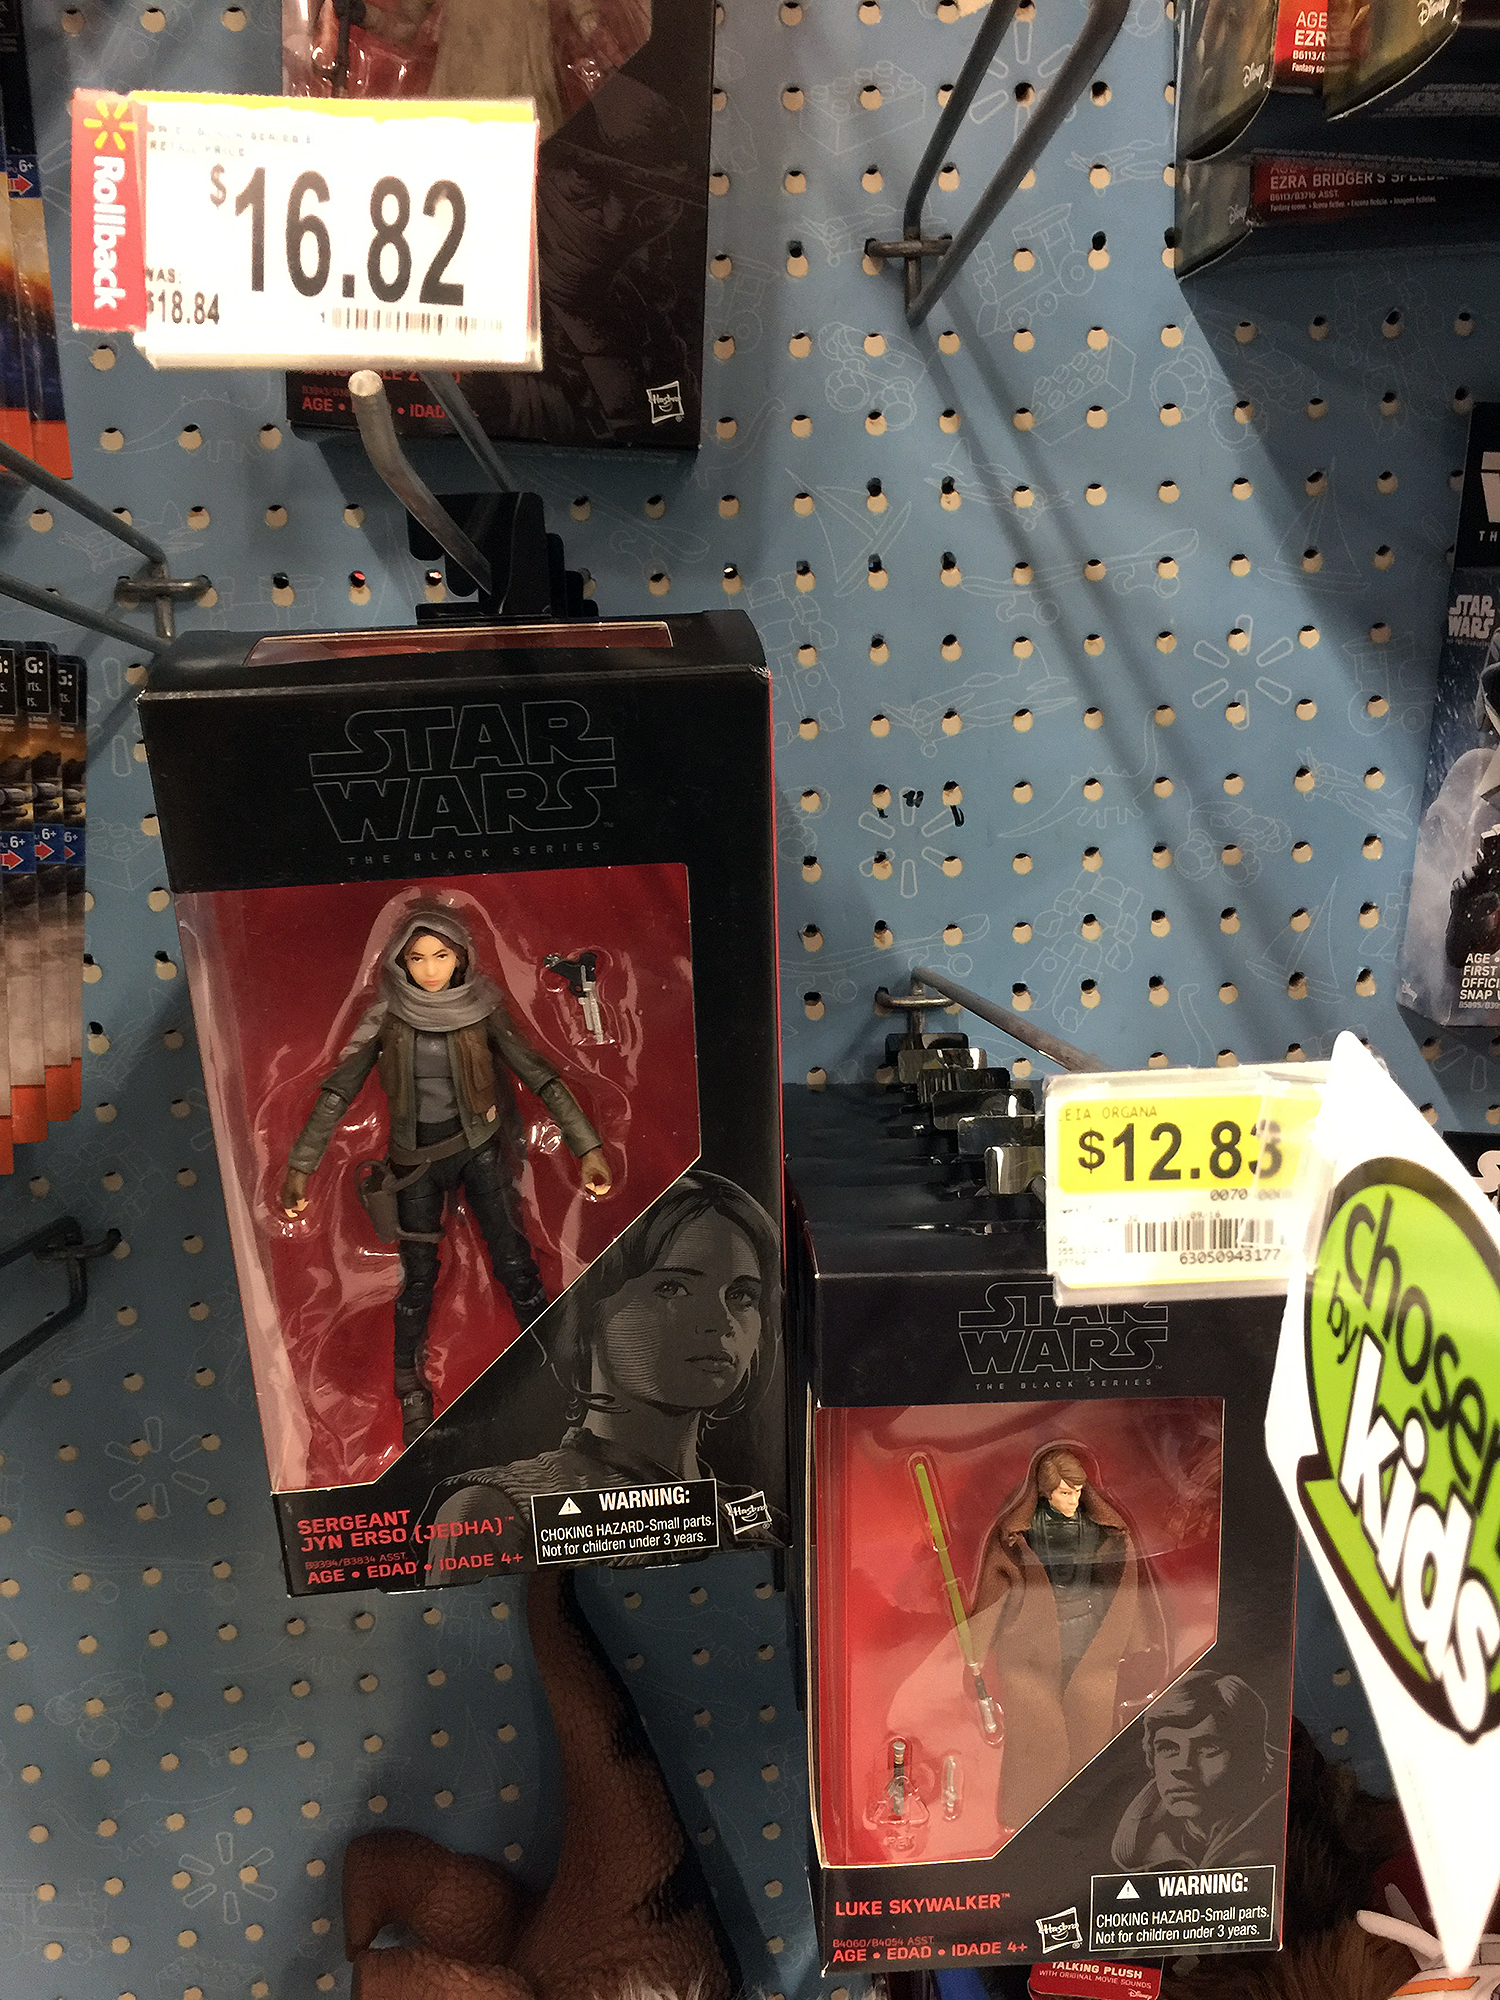 Star Wars Price Drop